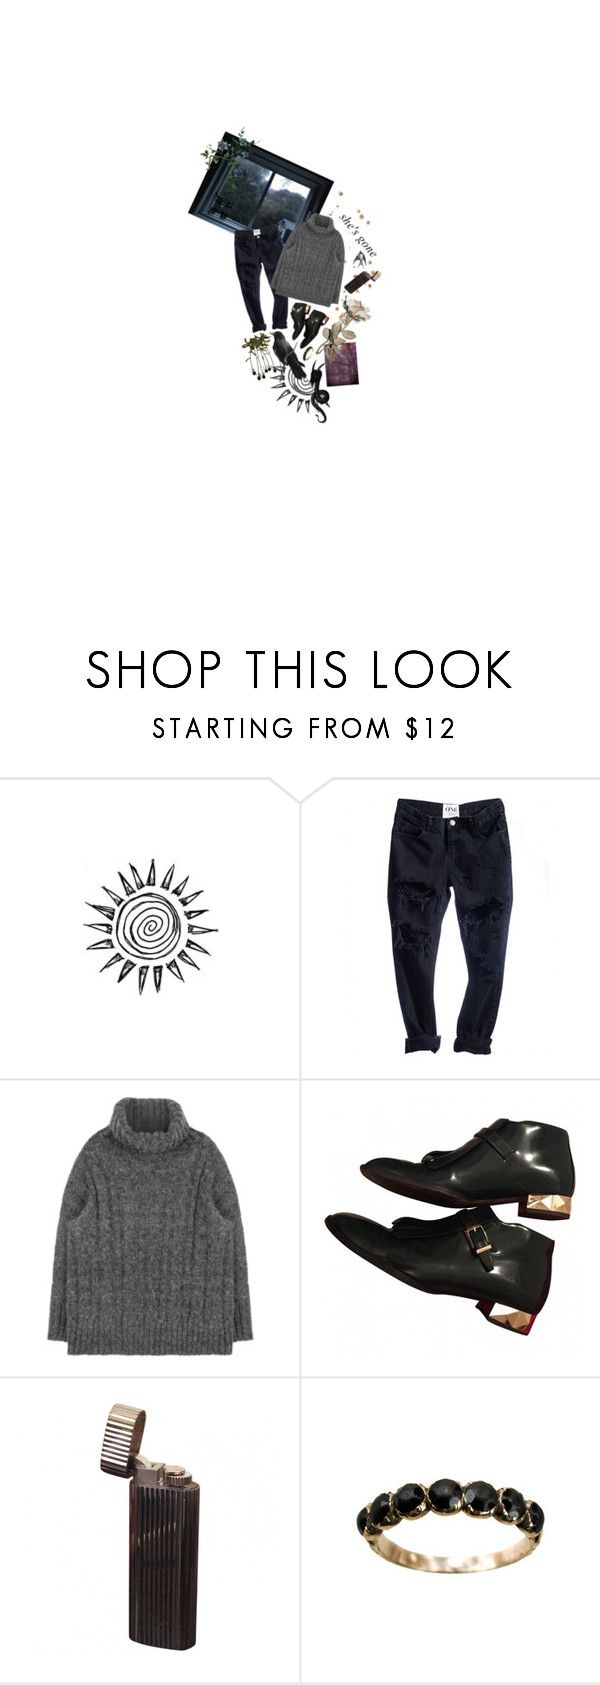 """gone without a trace"" by reslain ❤ liked on Polyvore featuring Alaïa and vintage"